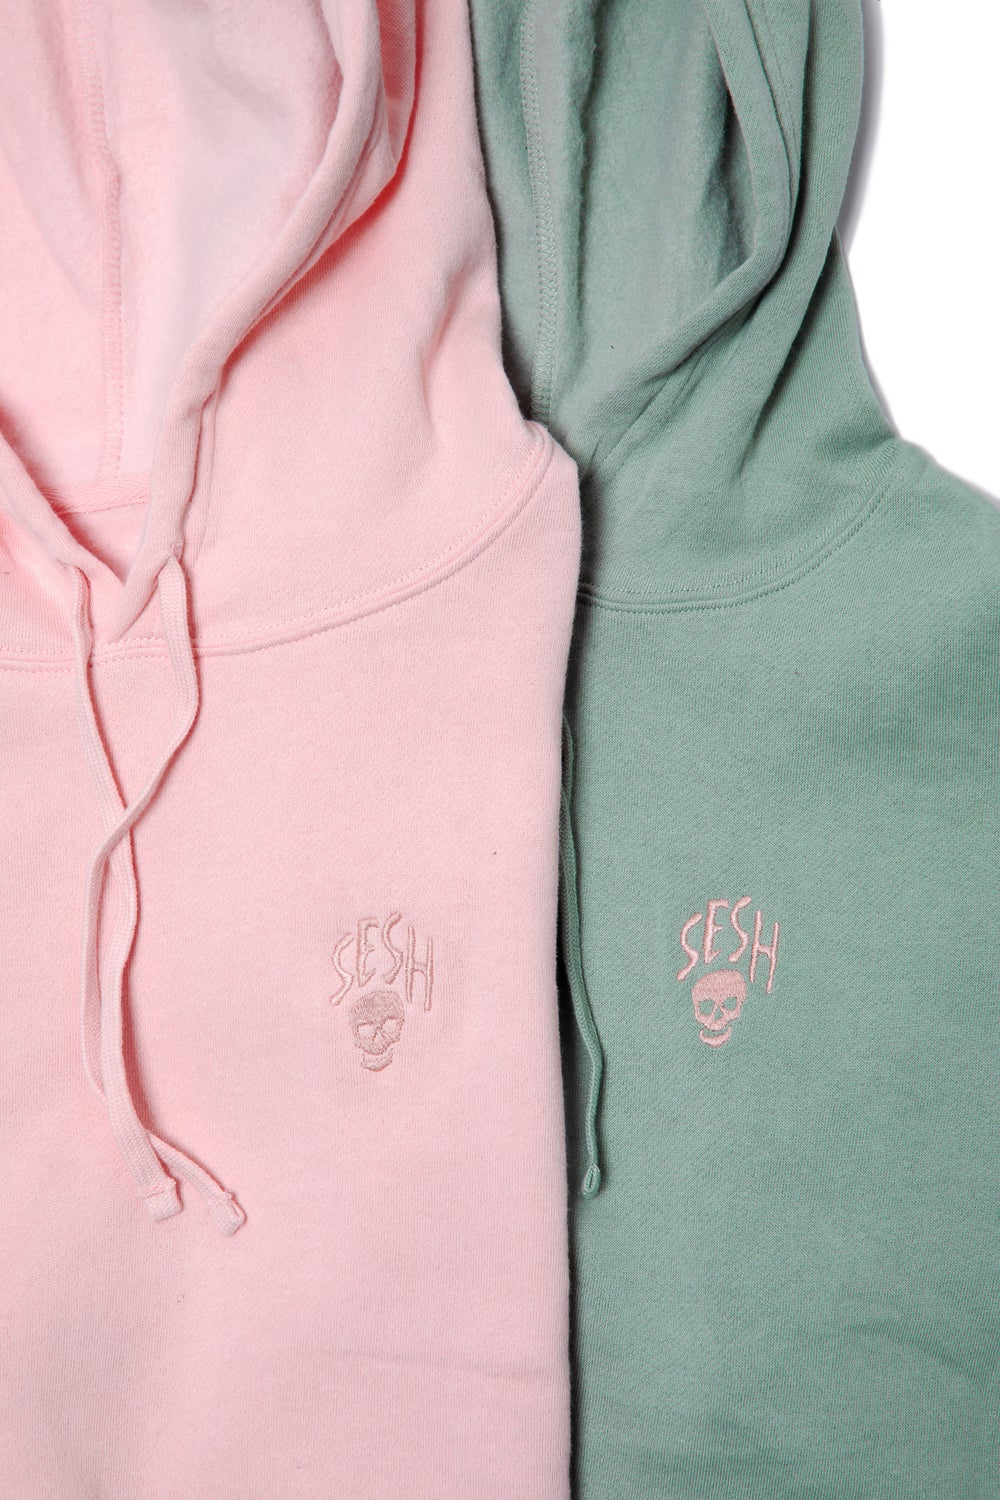 Image of Ladies Embroidered Seshskull Cropped Hoodie